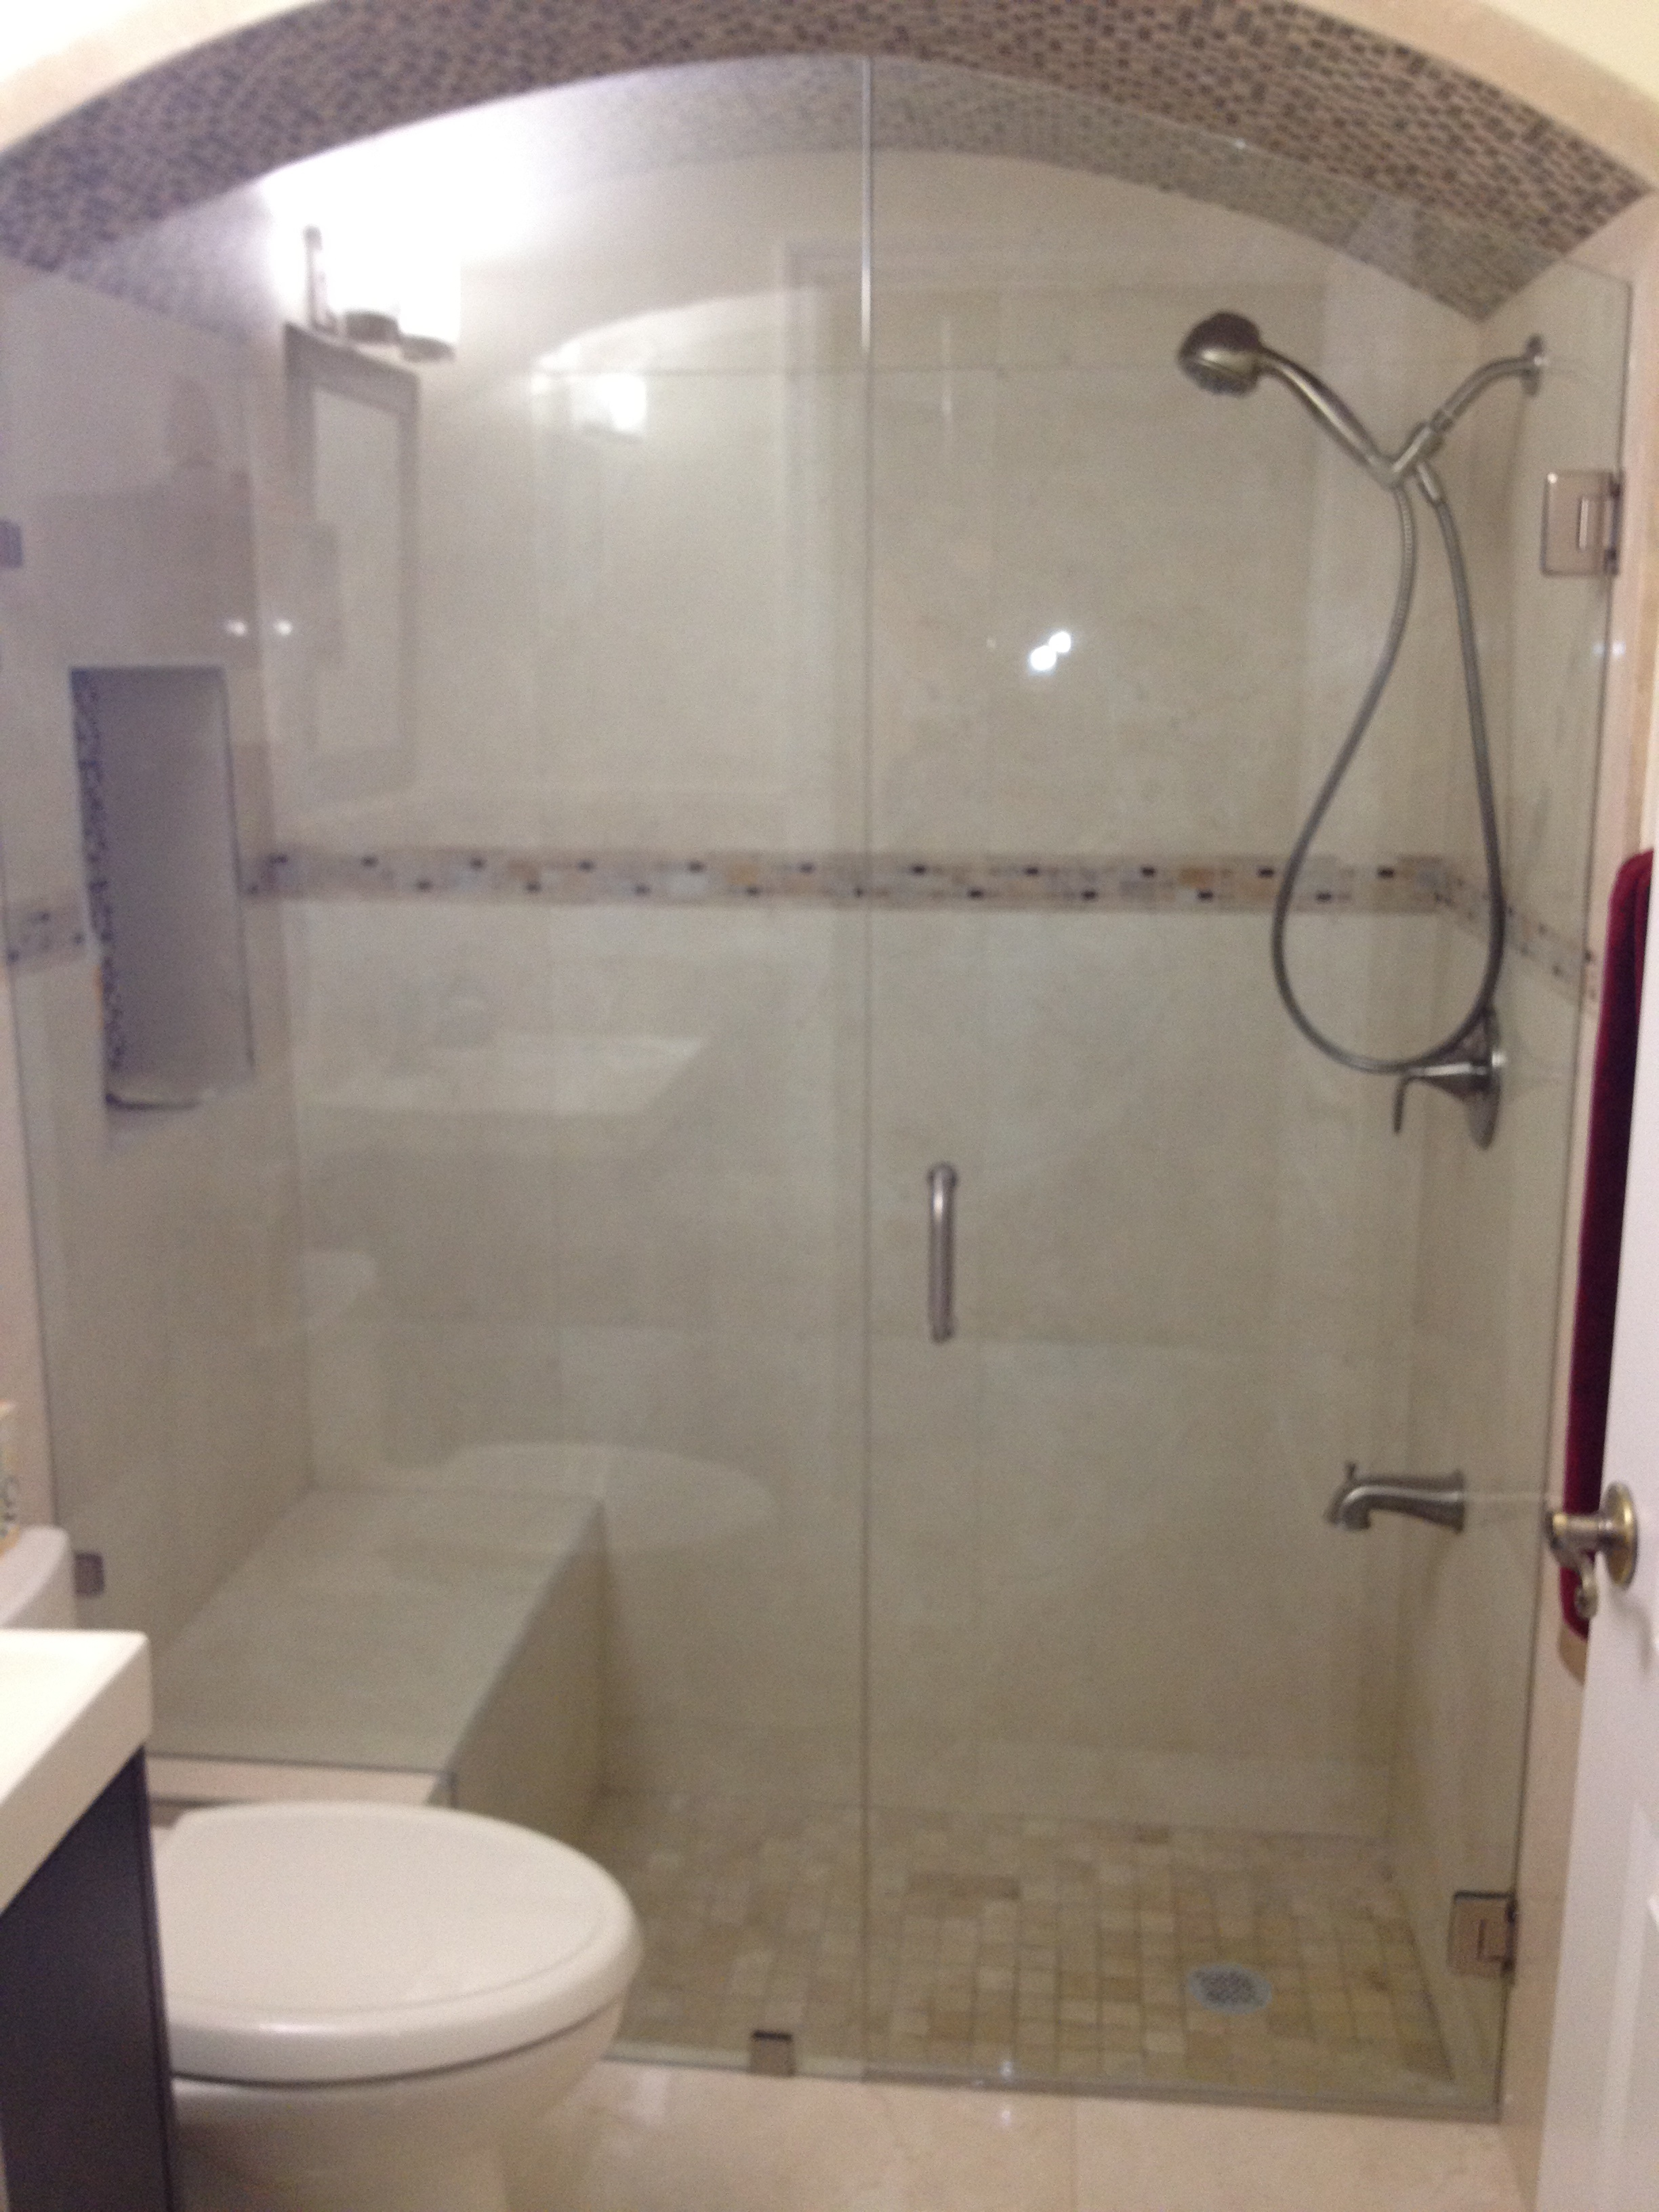 shower door bathroom doors sliding glass of designs bypass types different